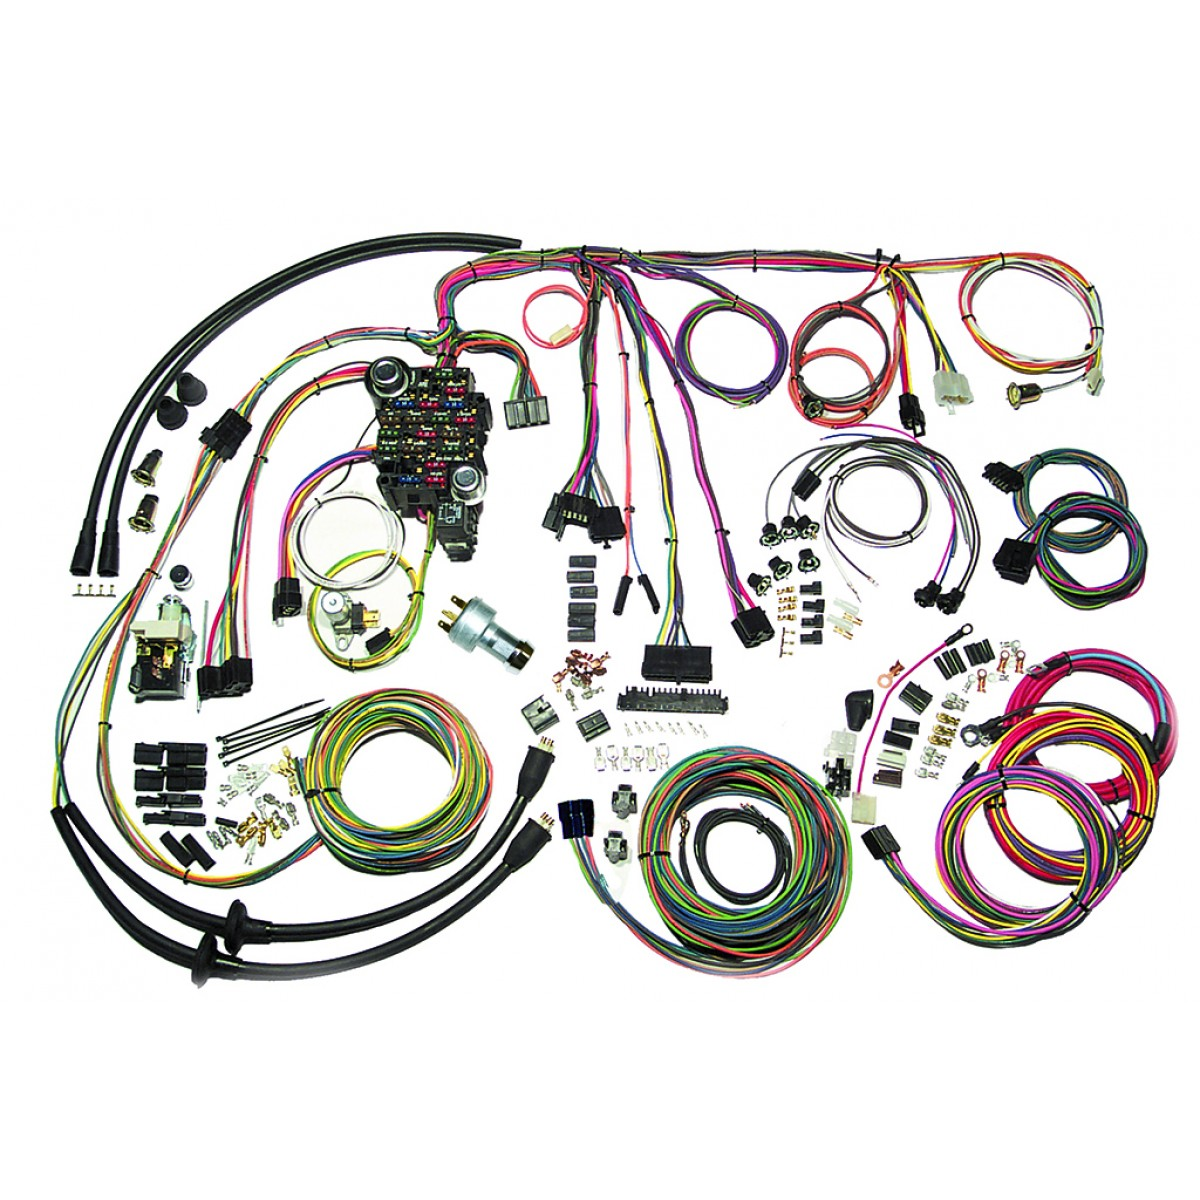 hight resolution of complete wiring harness kit 1957 chevy belair part 500434